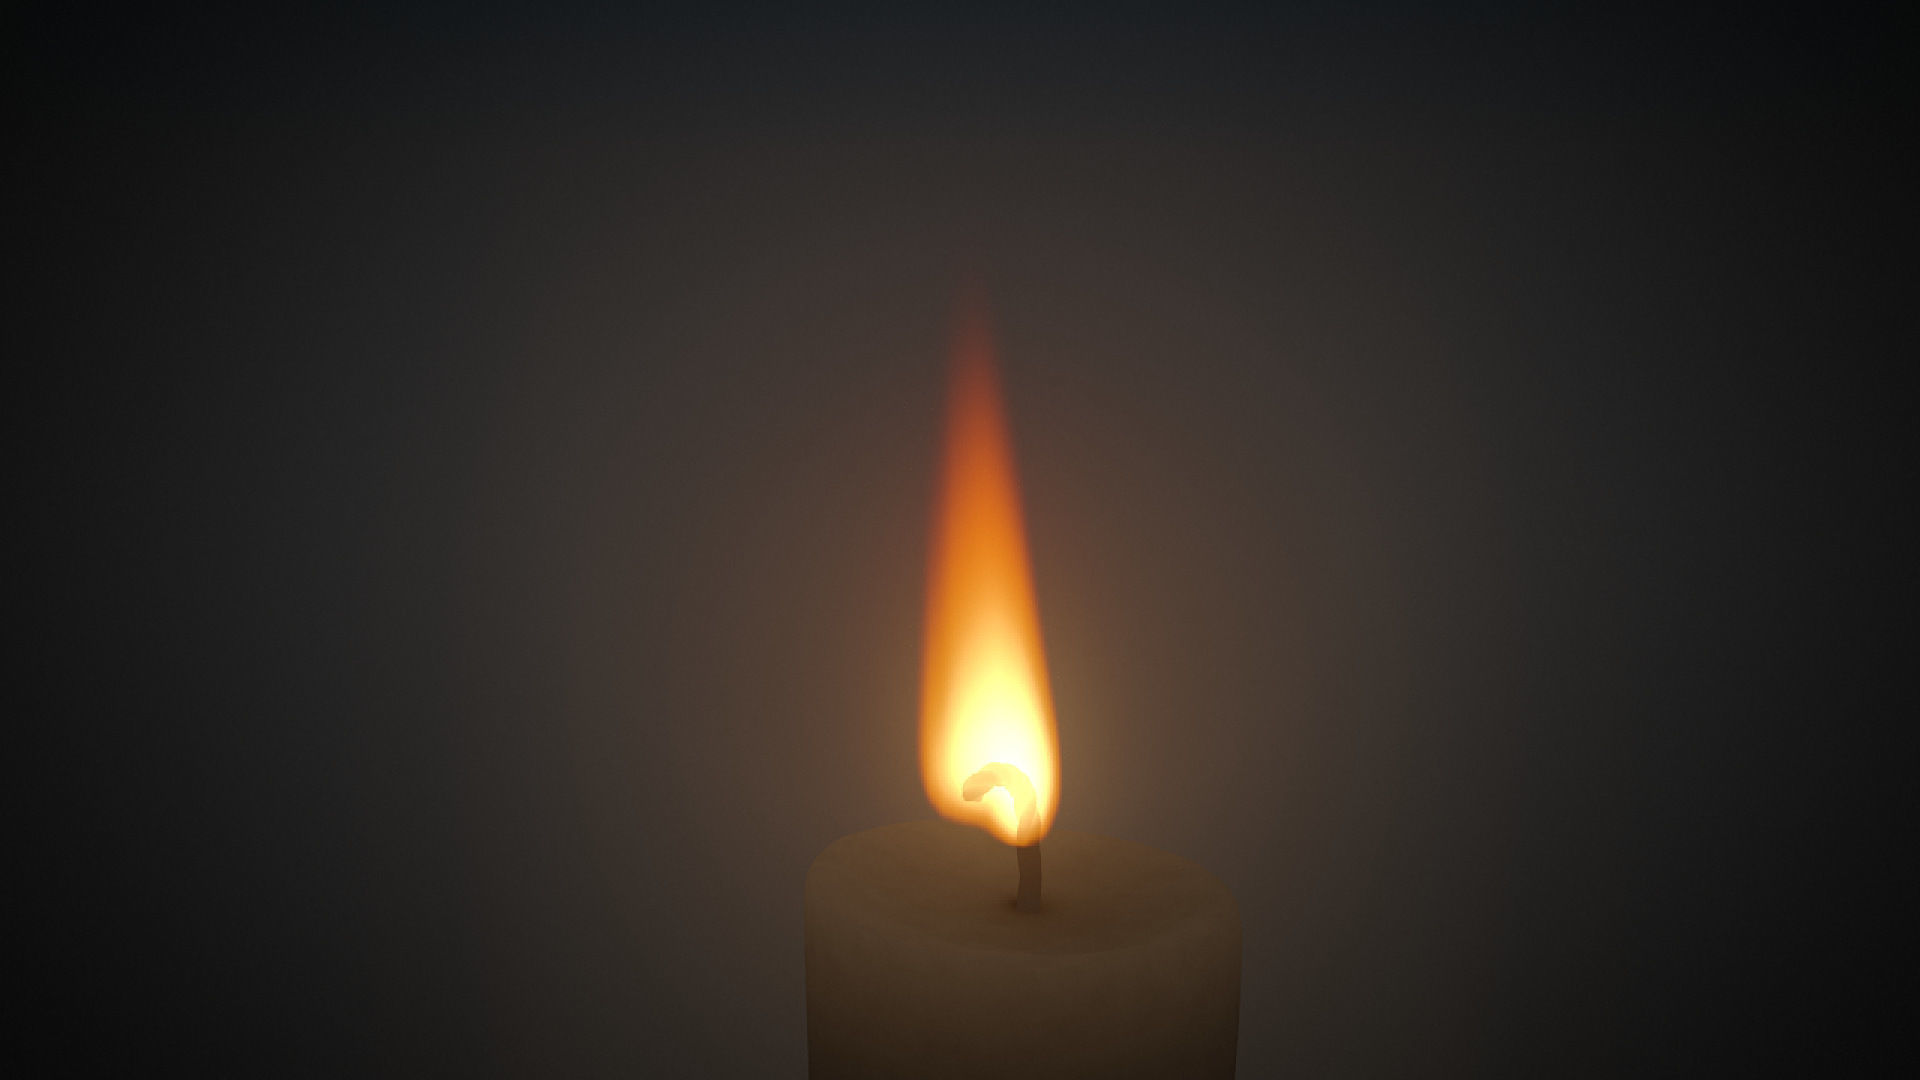 Candle Fire VDB animated 20s